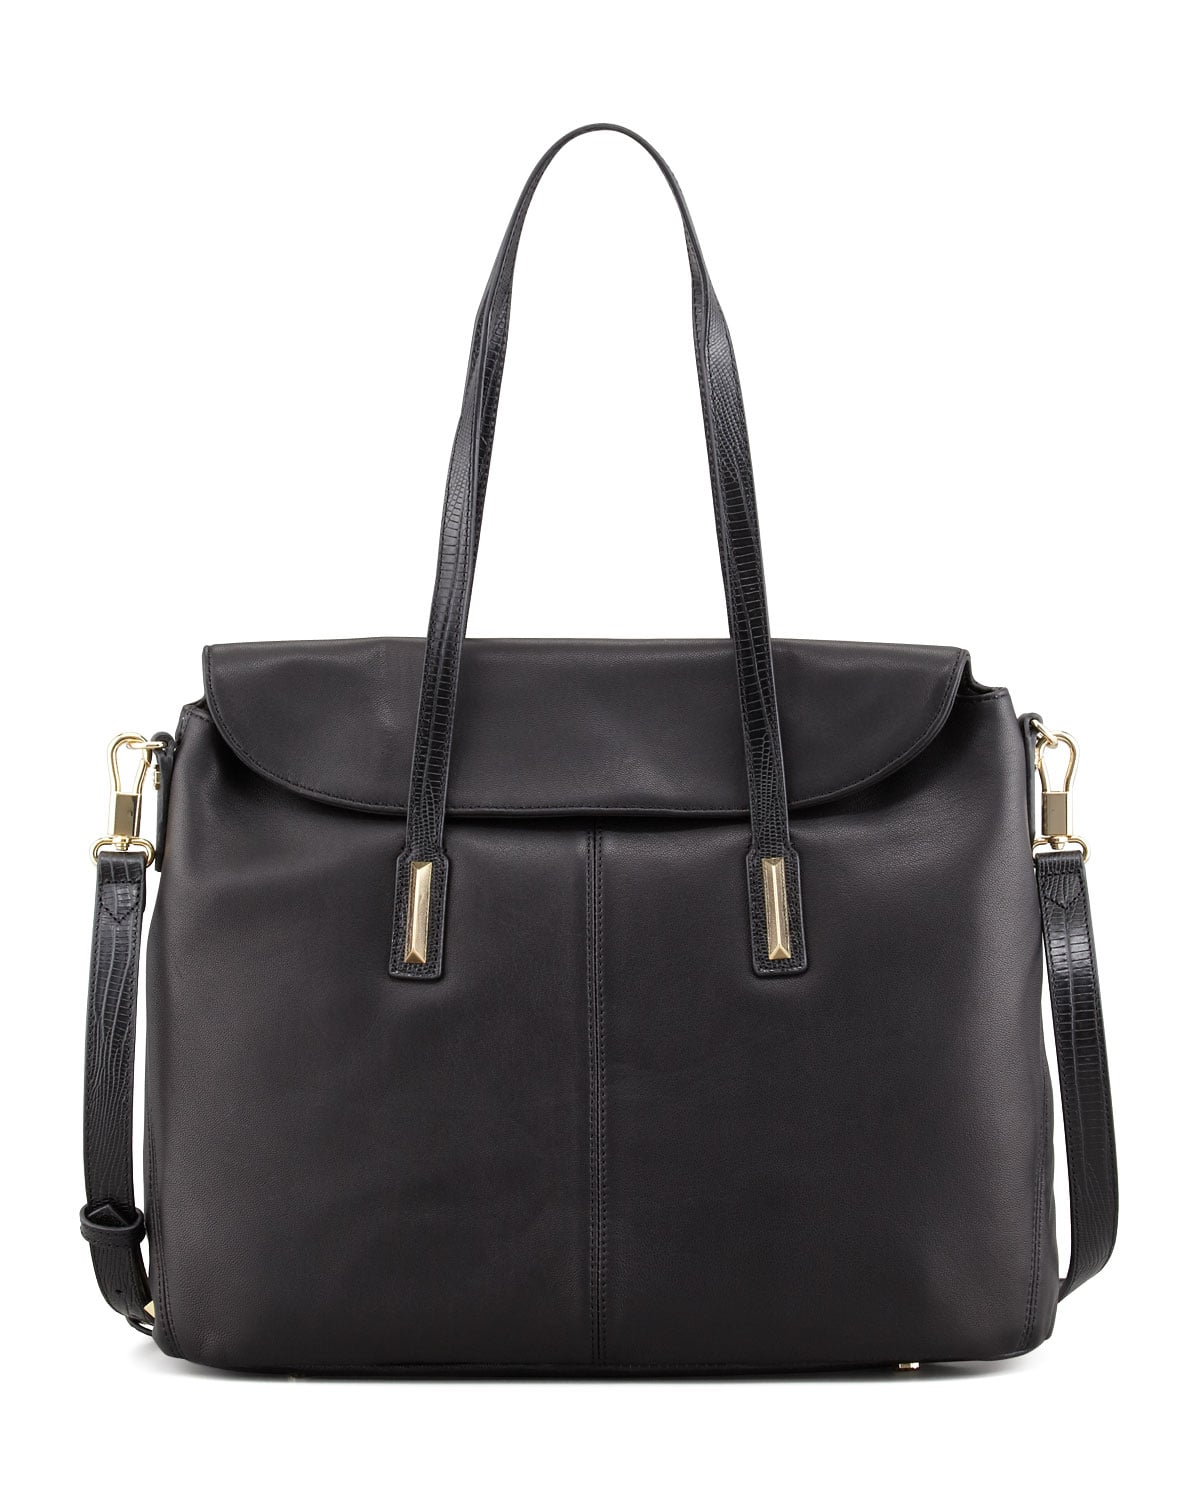 The Everyday Bag